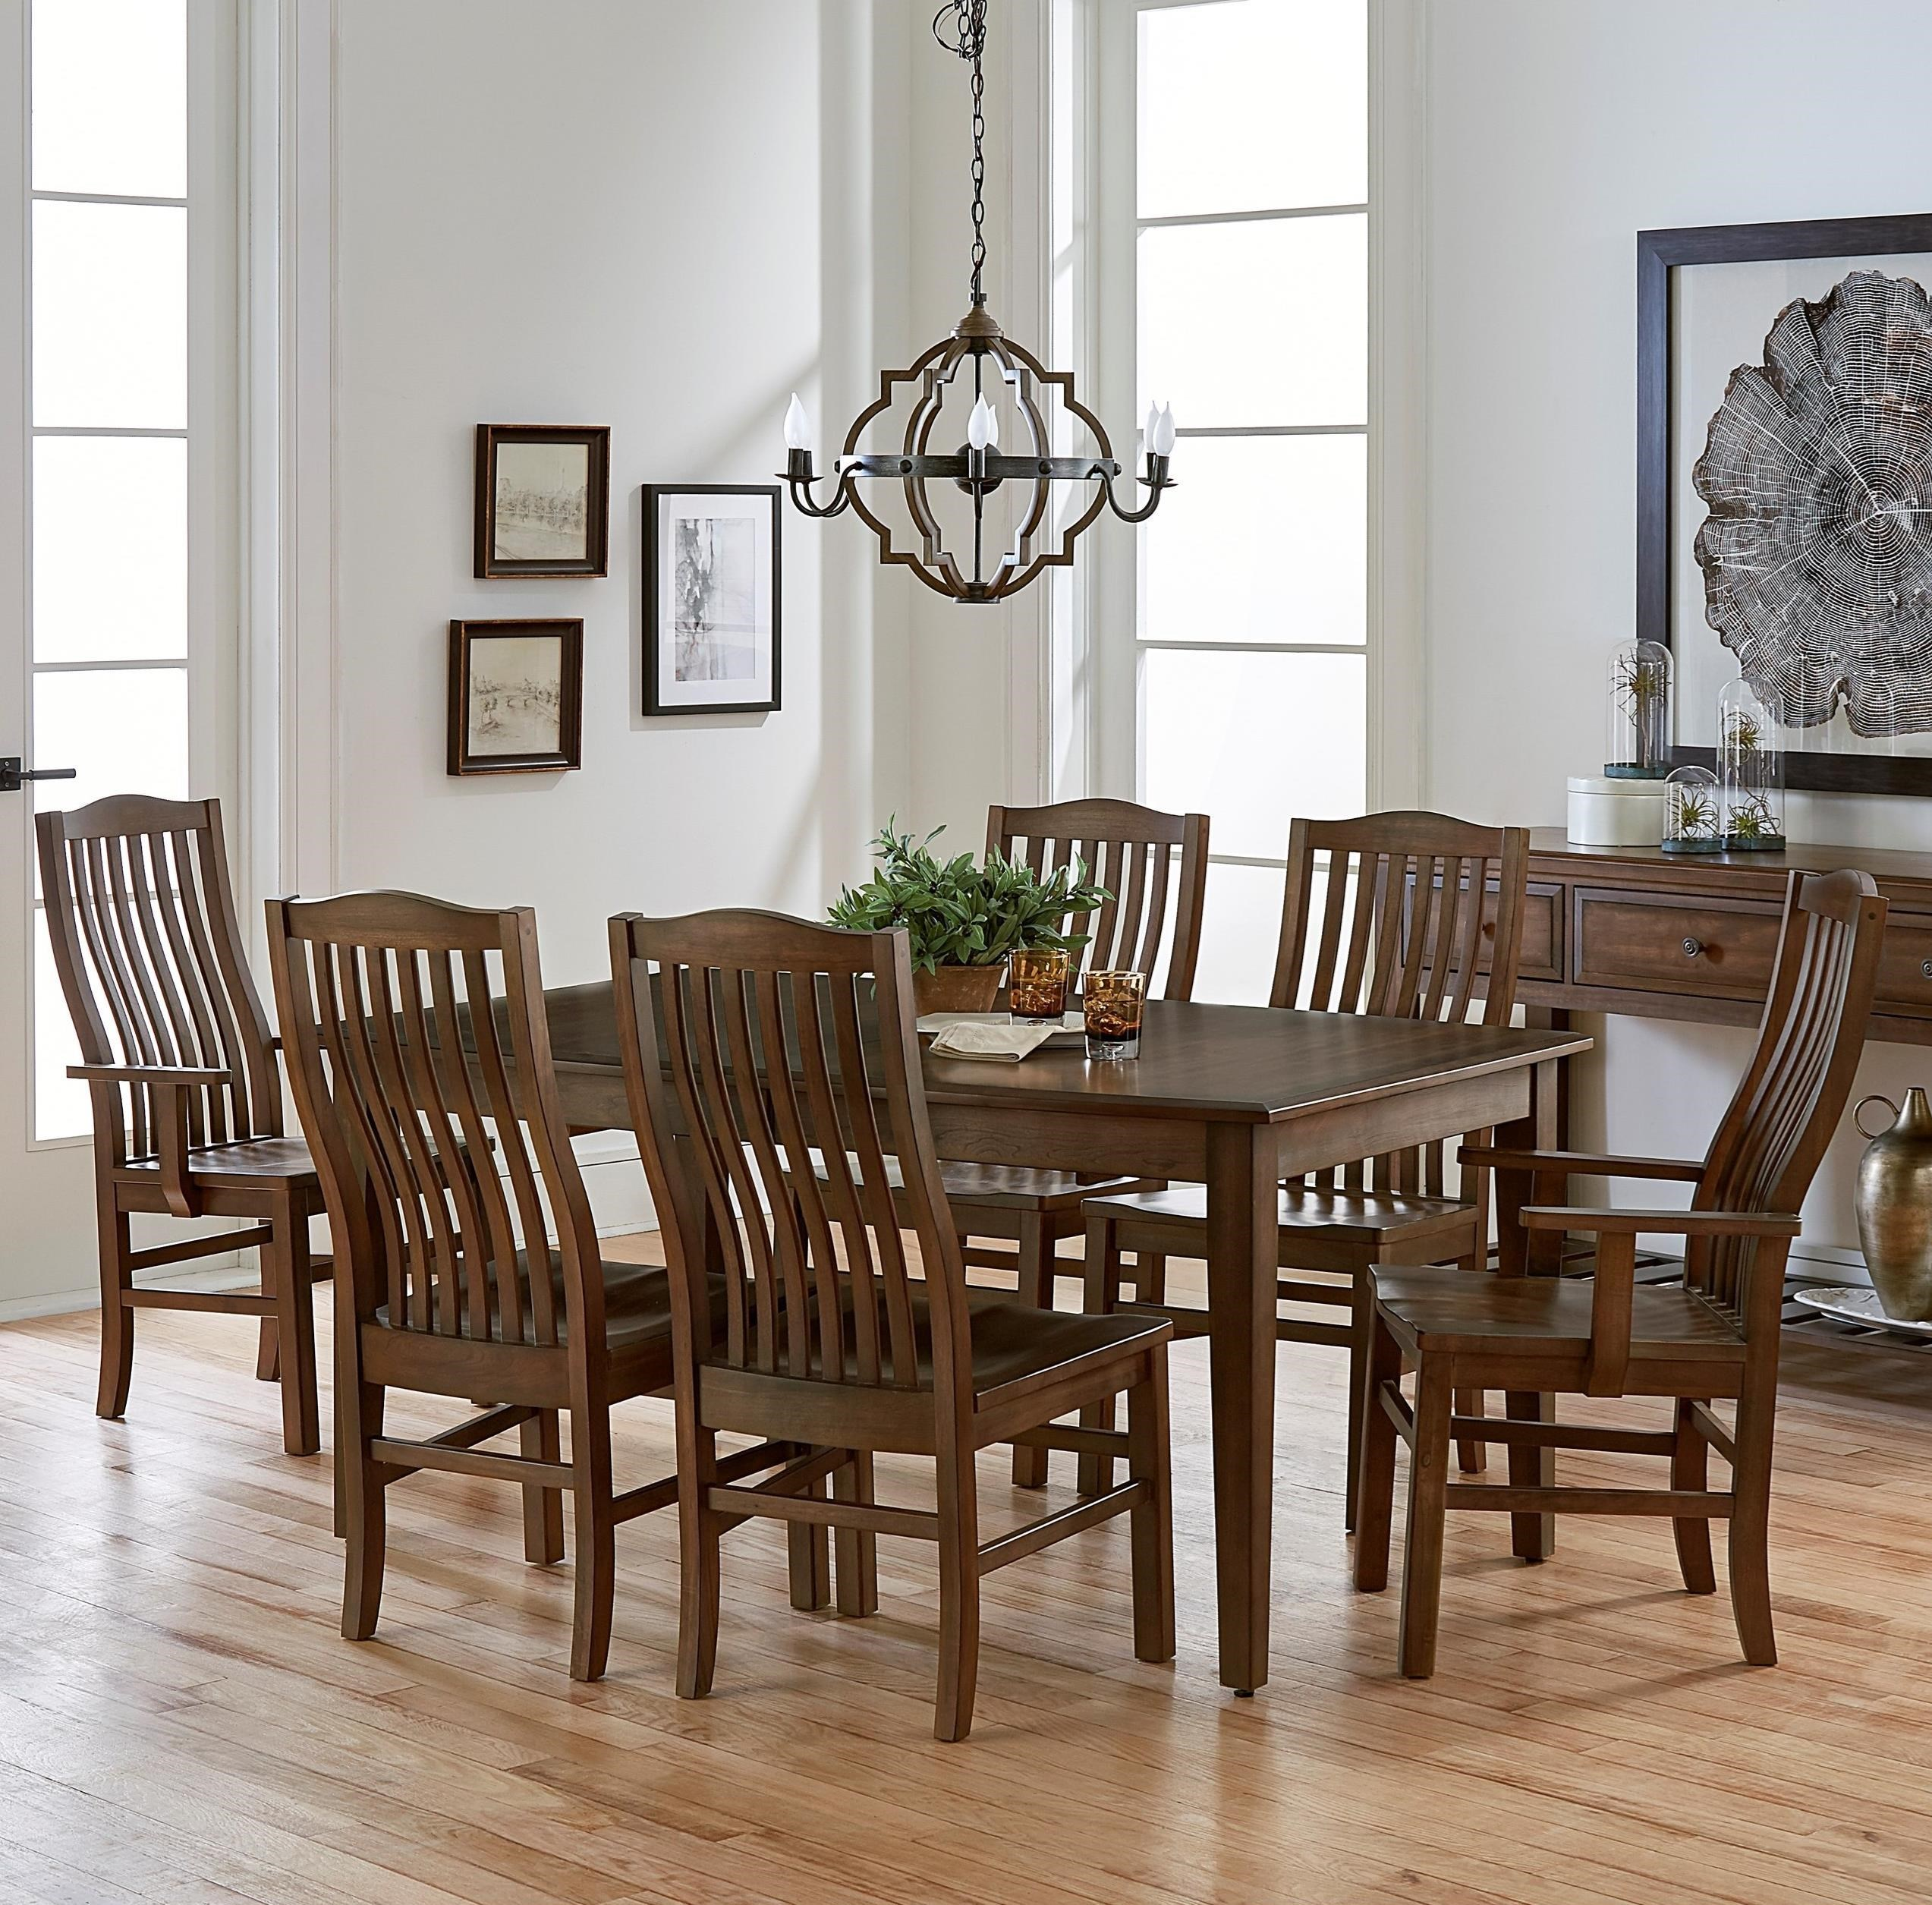 Artisan U0026 Post By Vaughan Bassett Simply Dining 7 Piece Solid Cherry Boat  Table Set   Becker Furniture World   Dining 7 (or More) Piece Sets